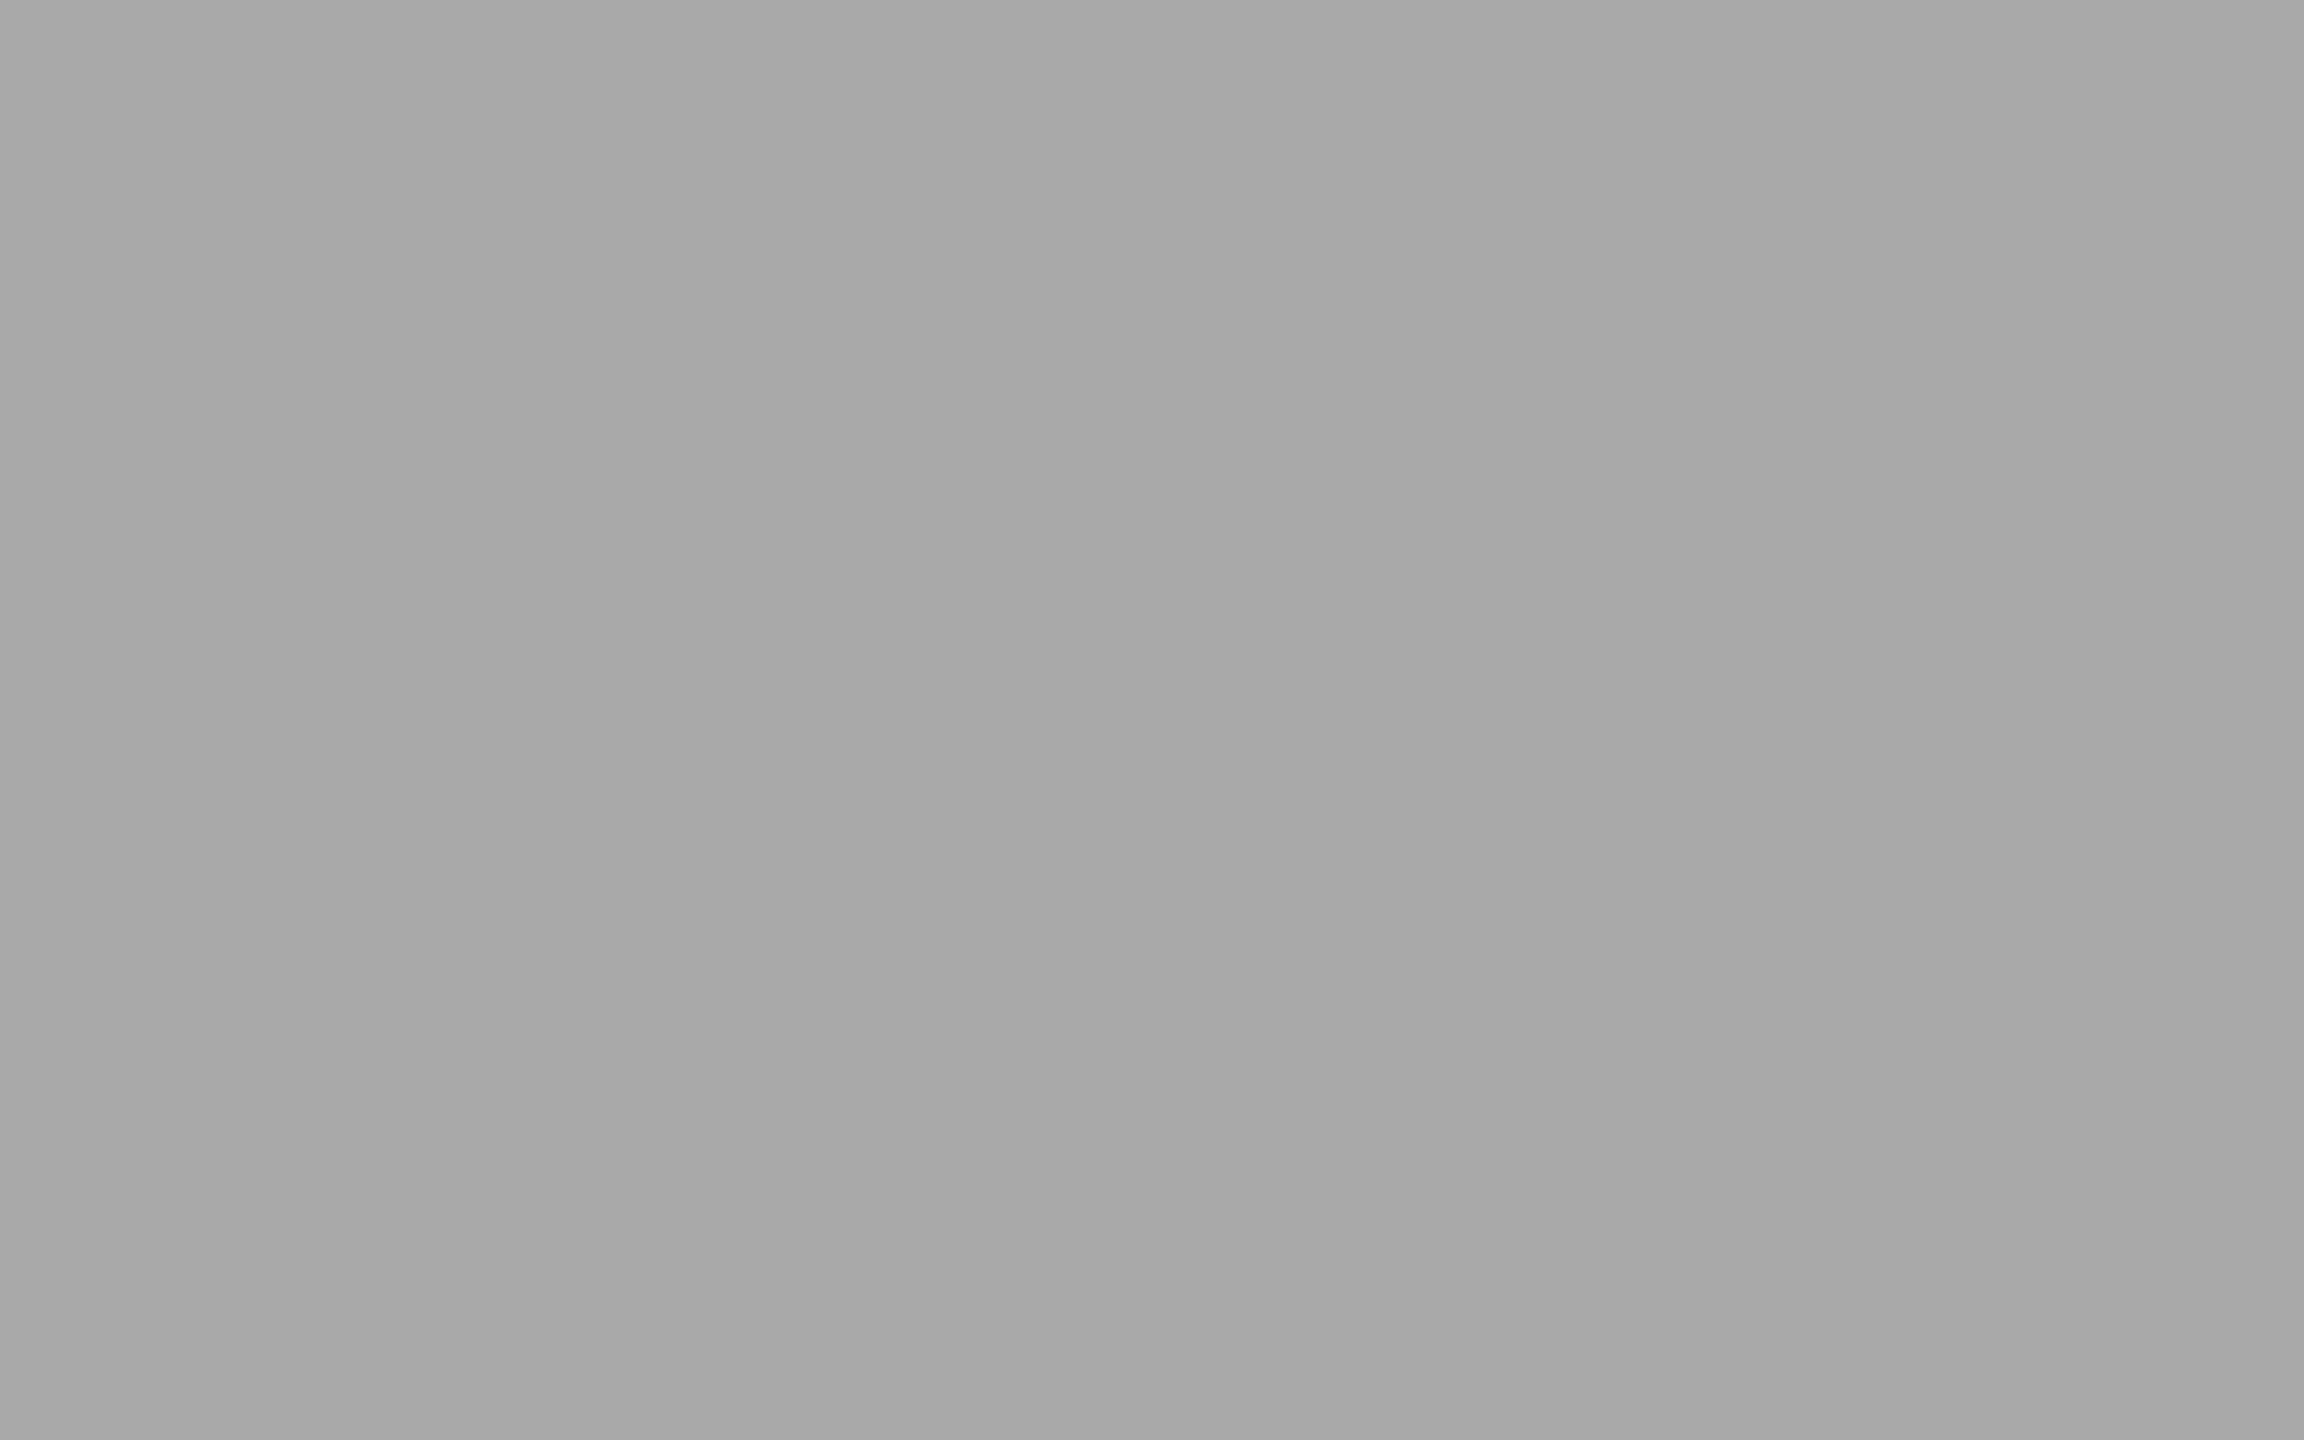 2304x1440 Dark Gray Solid Color Background